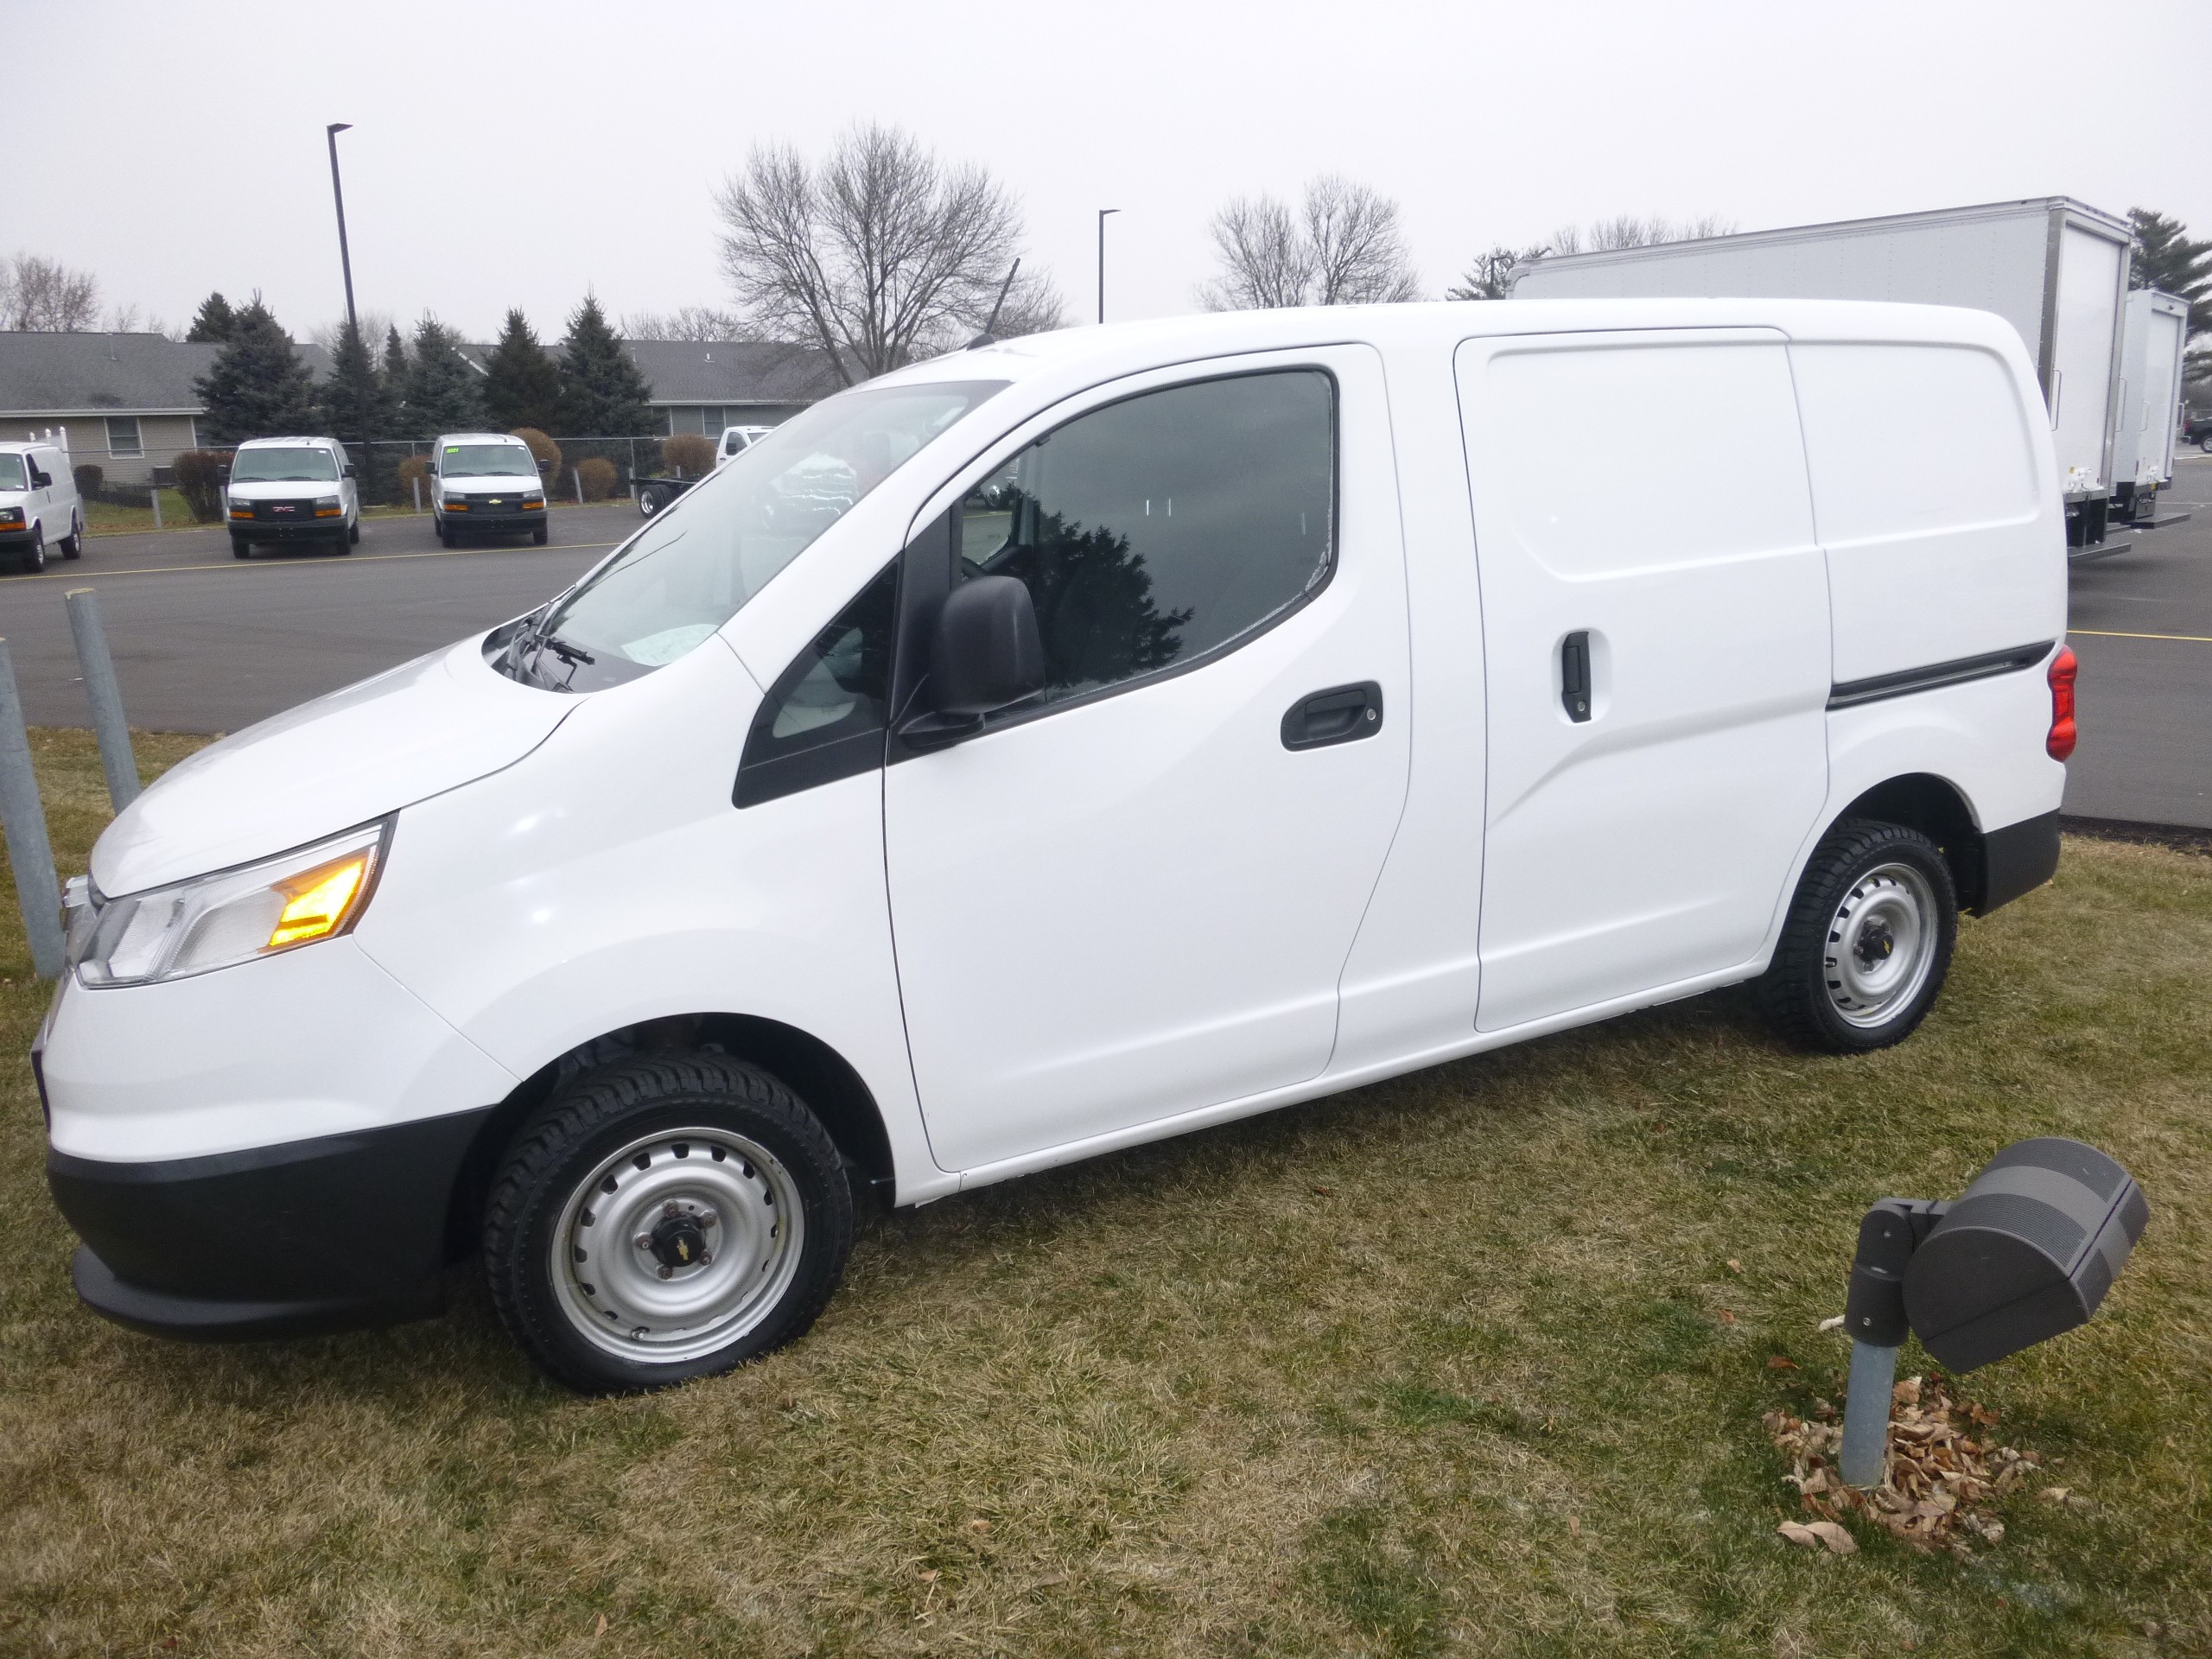 Used, 2015, Chevrolet, Chevy City Express LT, Vans